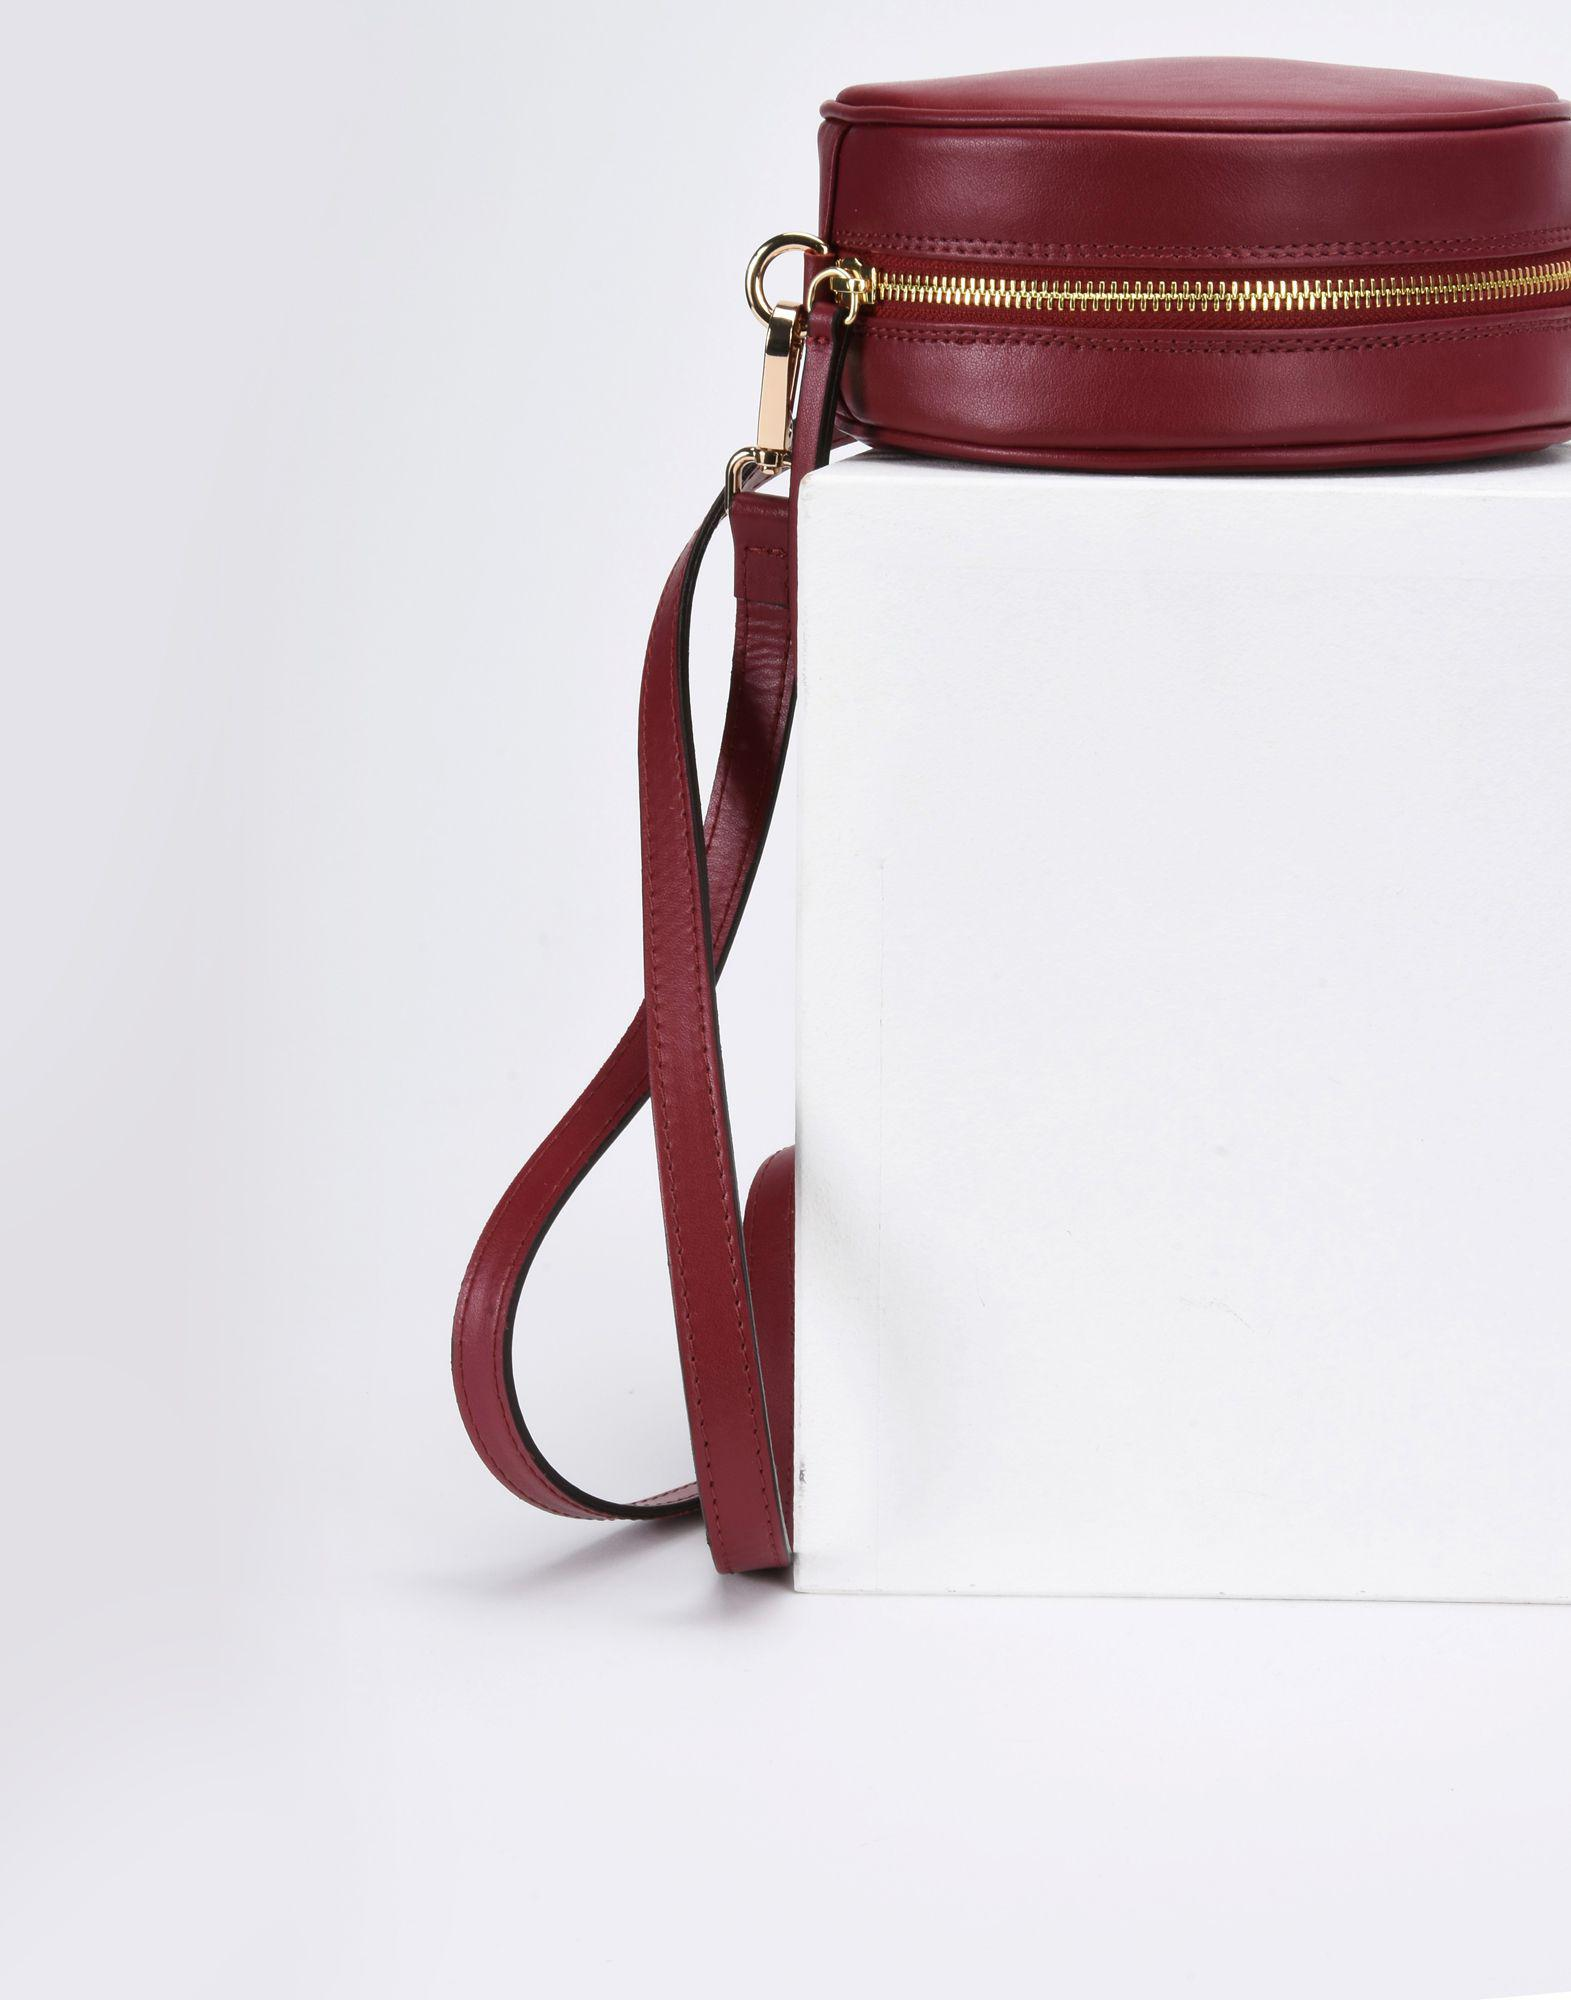 8 Leather Cross-body Bags